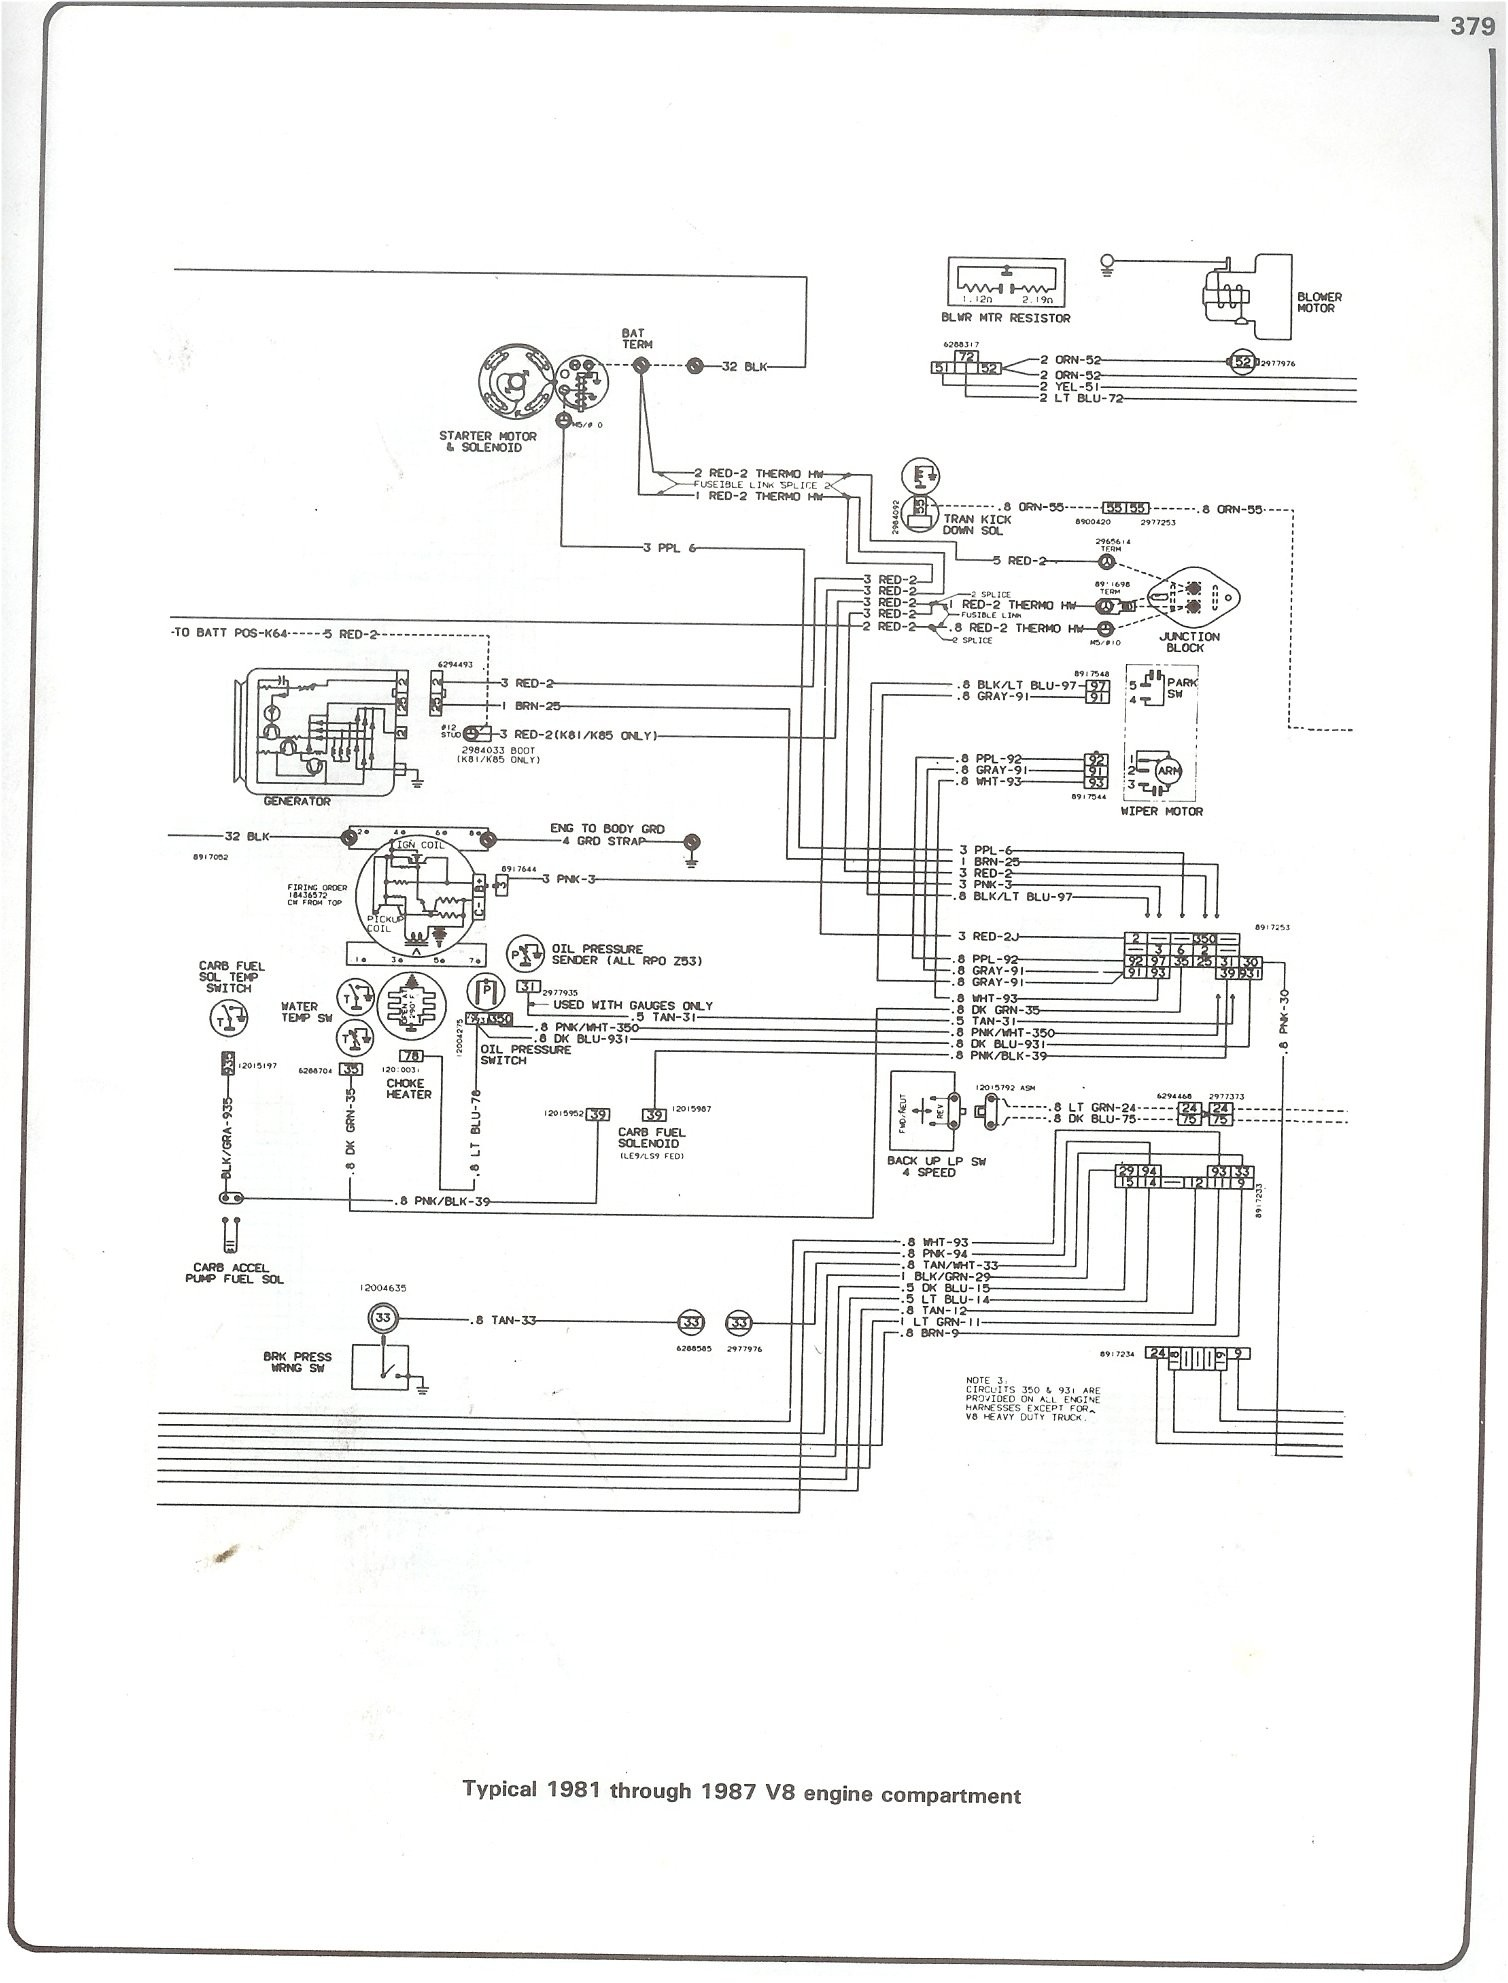 1983 Chevy 305 Wiring Diagram Great Installation Of Firing Order Library Rh 8 Mac Happen De 1986 Engine Distributor